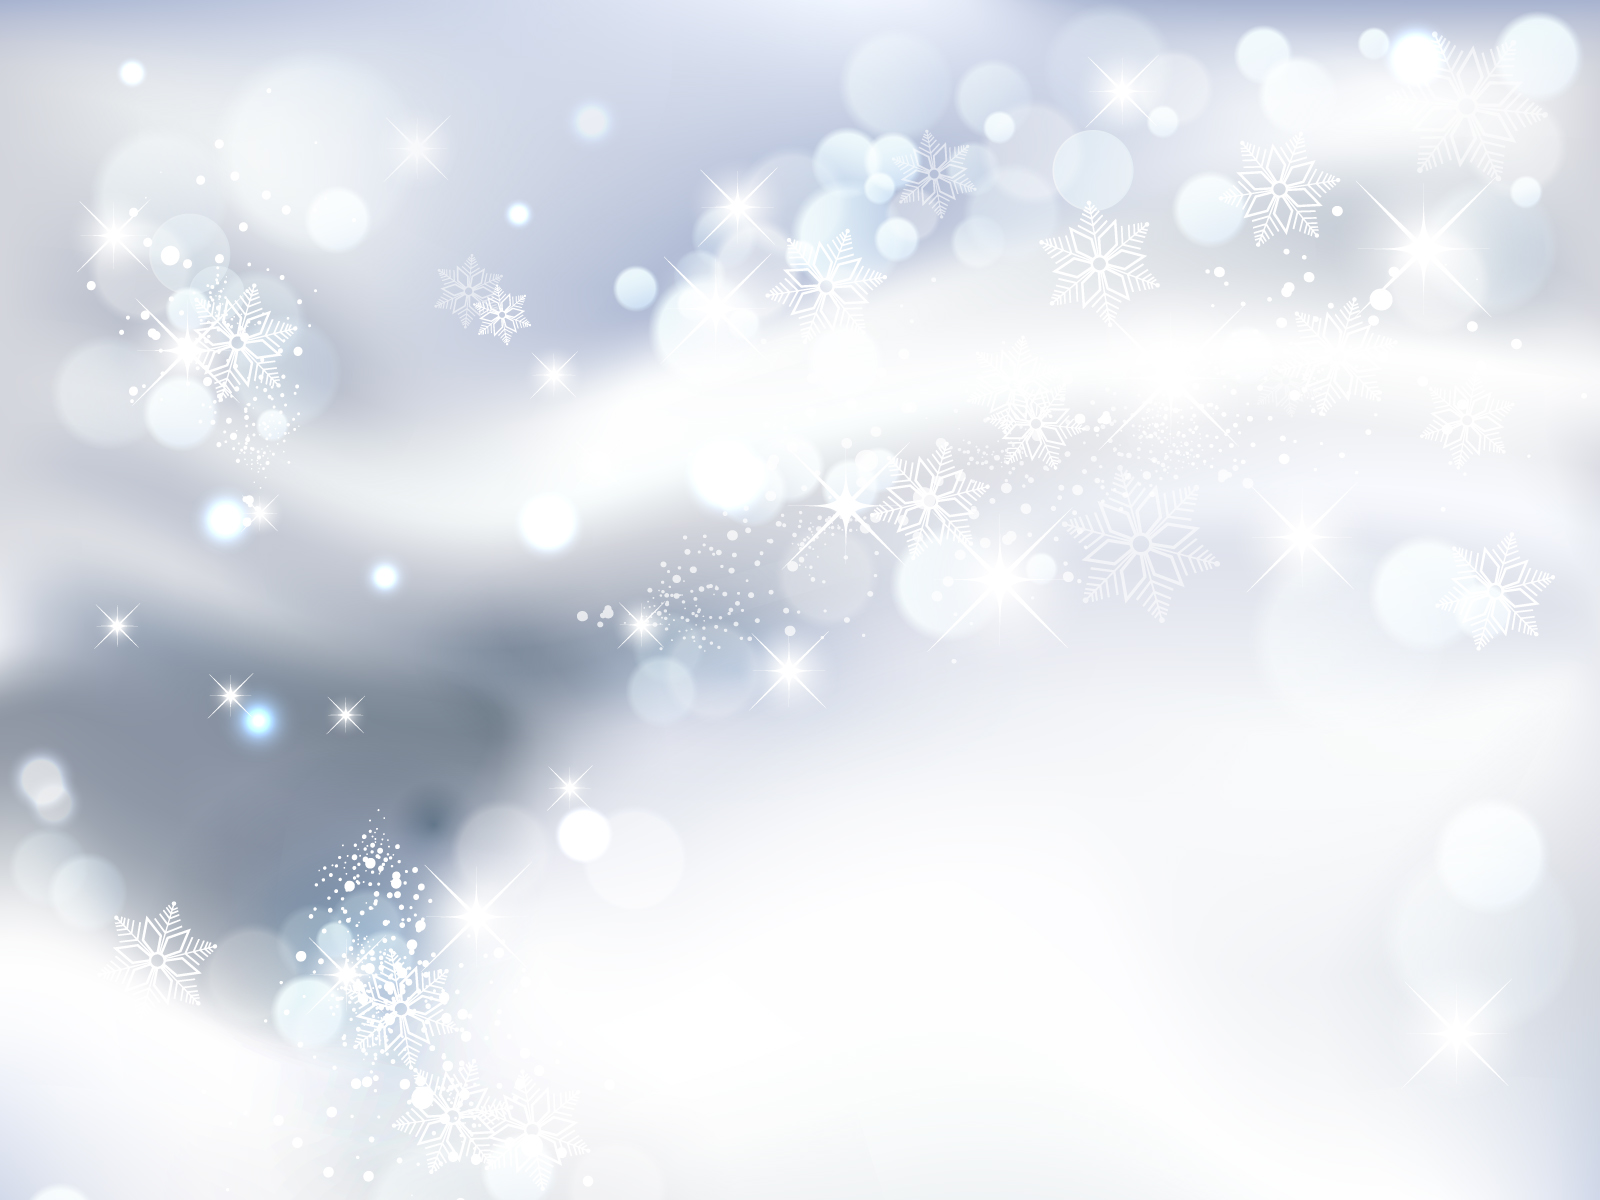 ... - Abstract, Christmas, Design, Grey, White - PPT Backgrounds